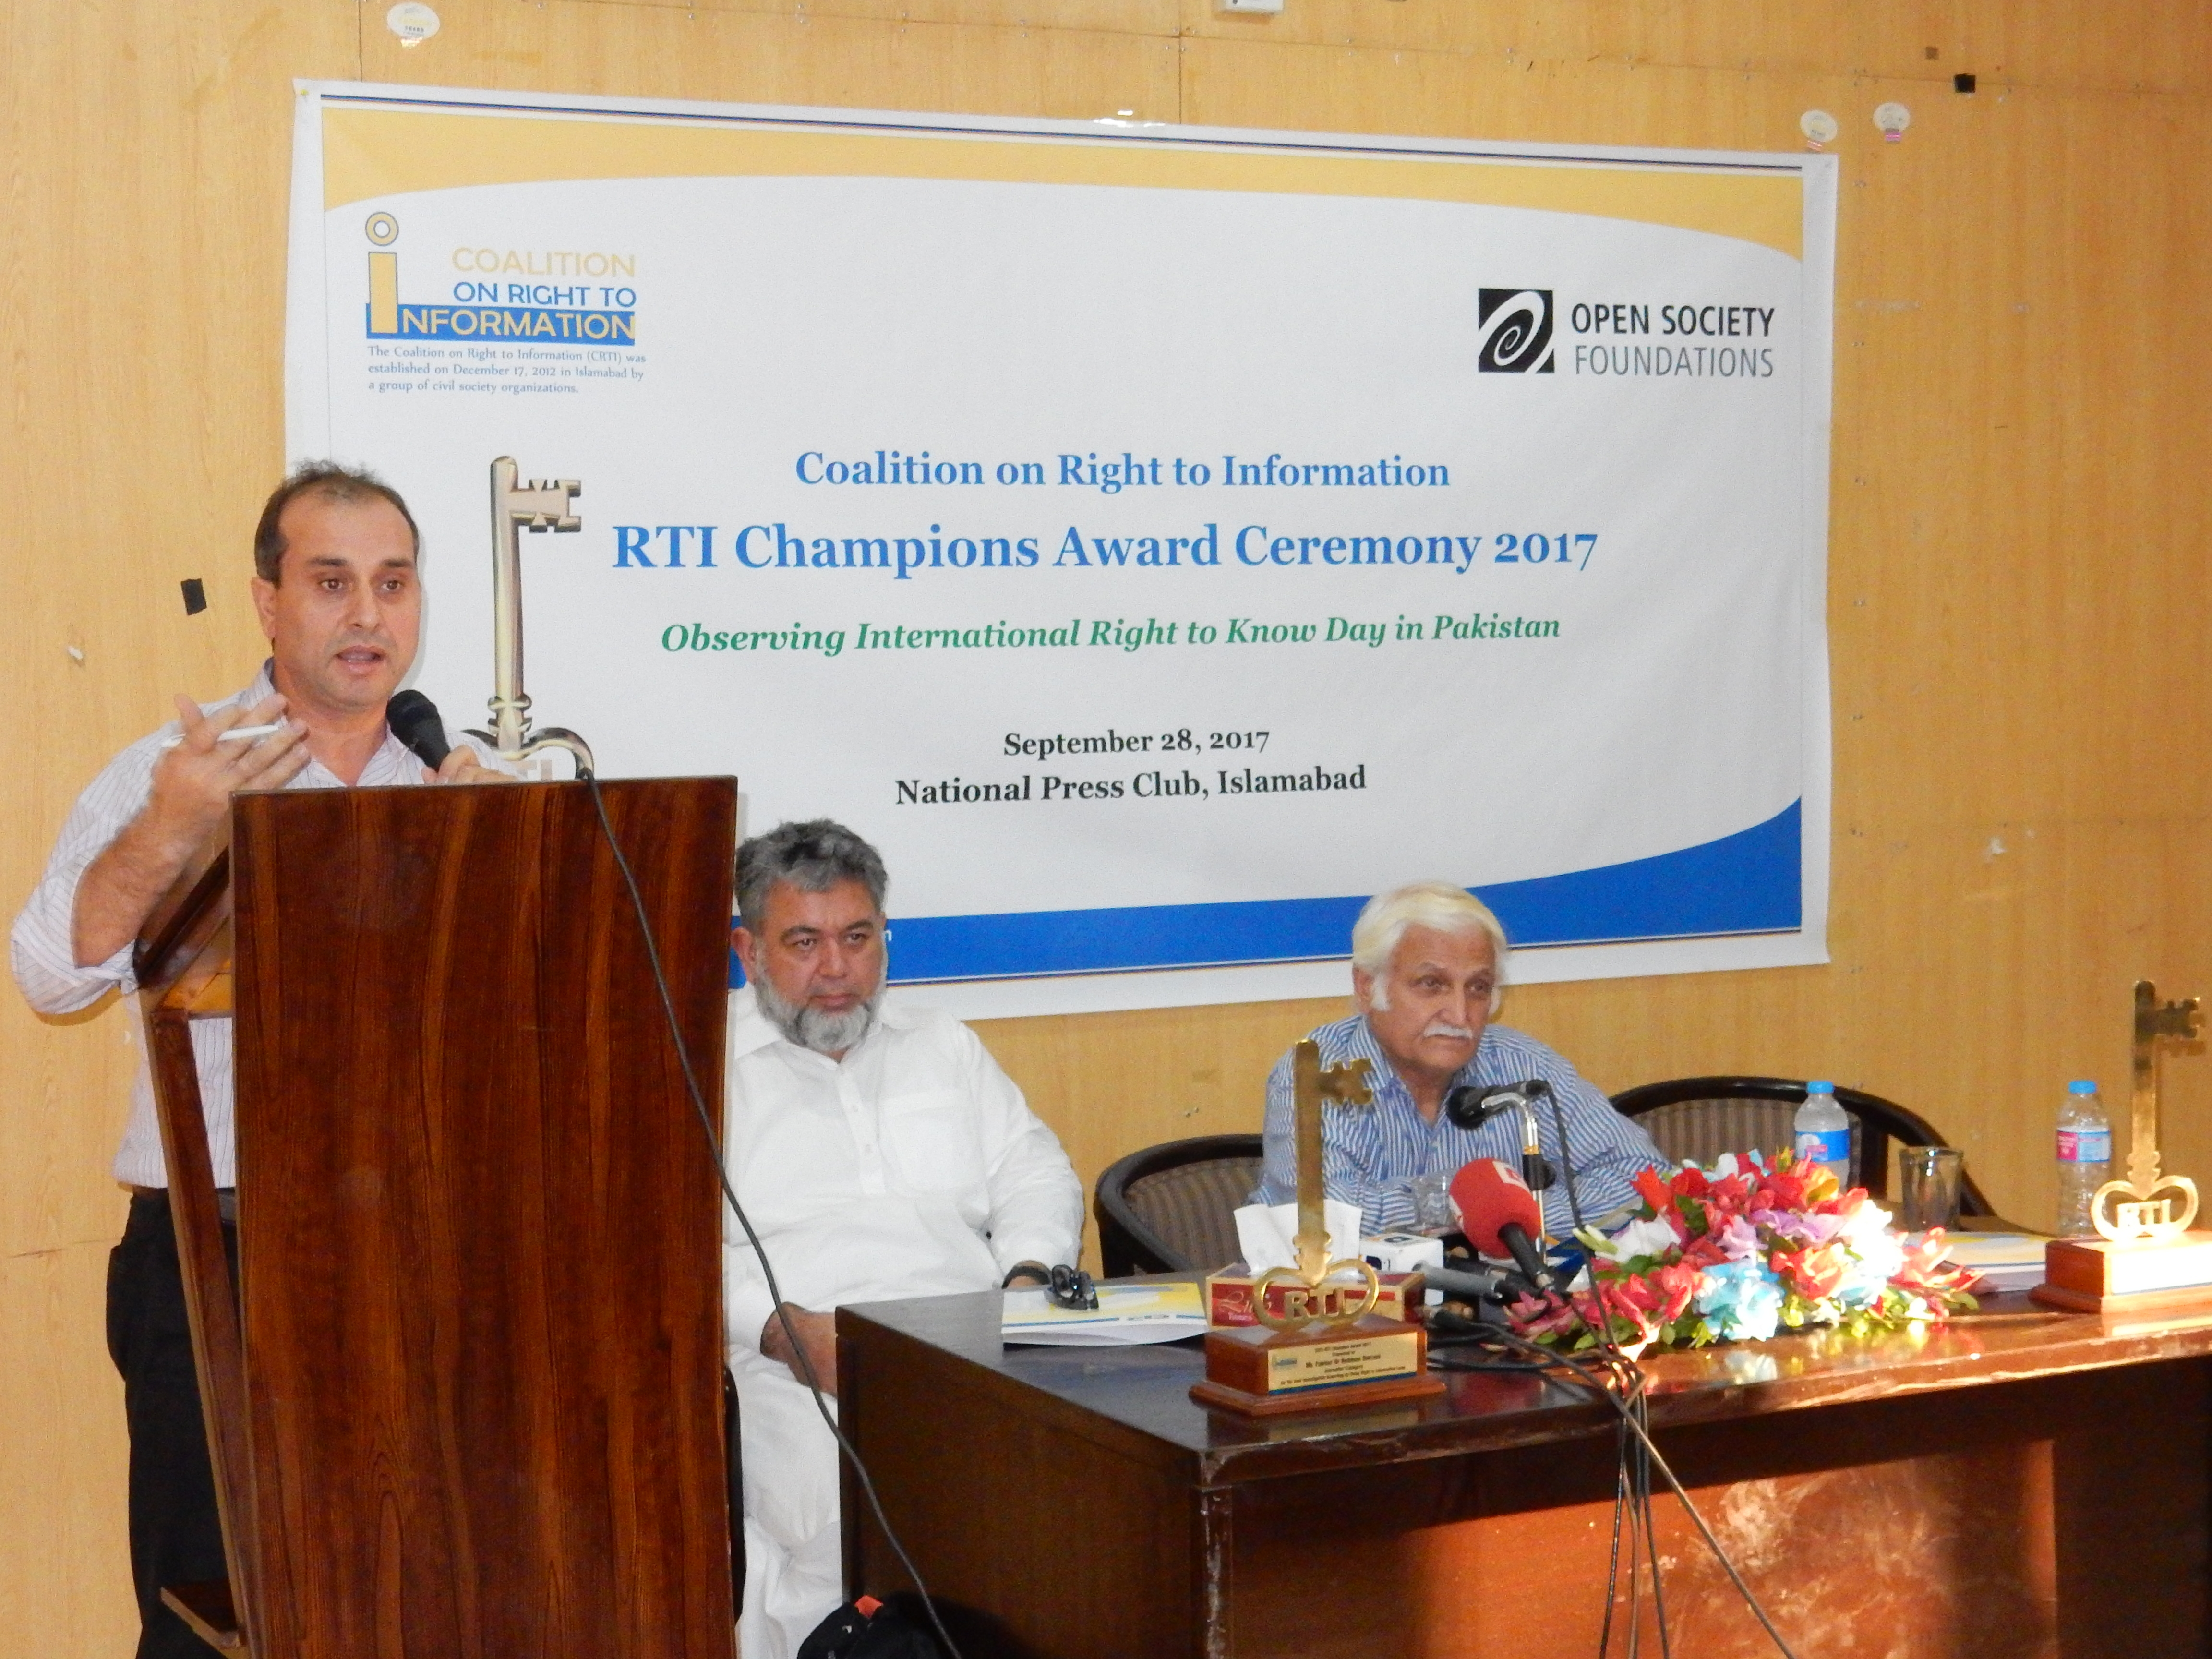 Mr. Anwar, Executive Director, Centre for Governance and Public Accountability, (CGPA) talking about the poor implementation status of existing RTI